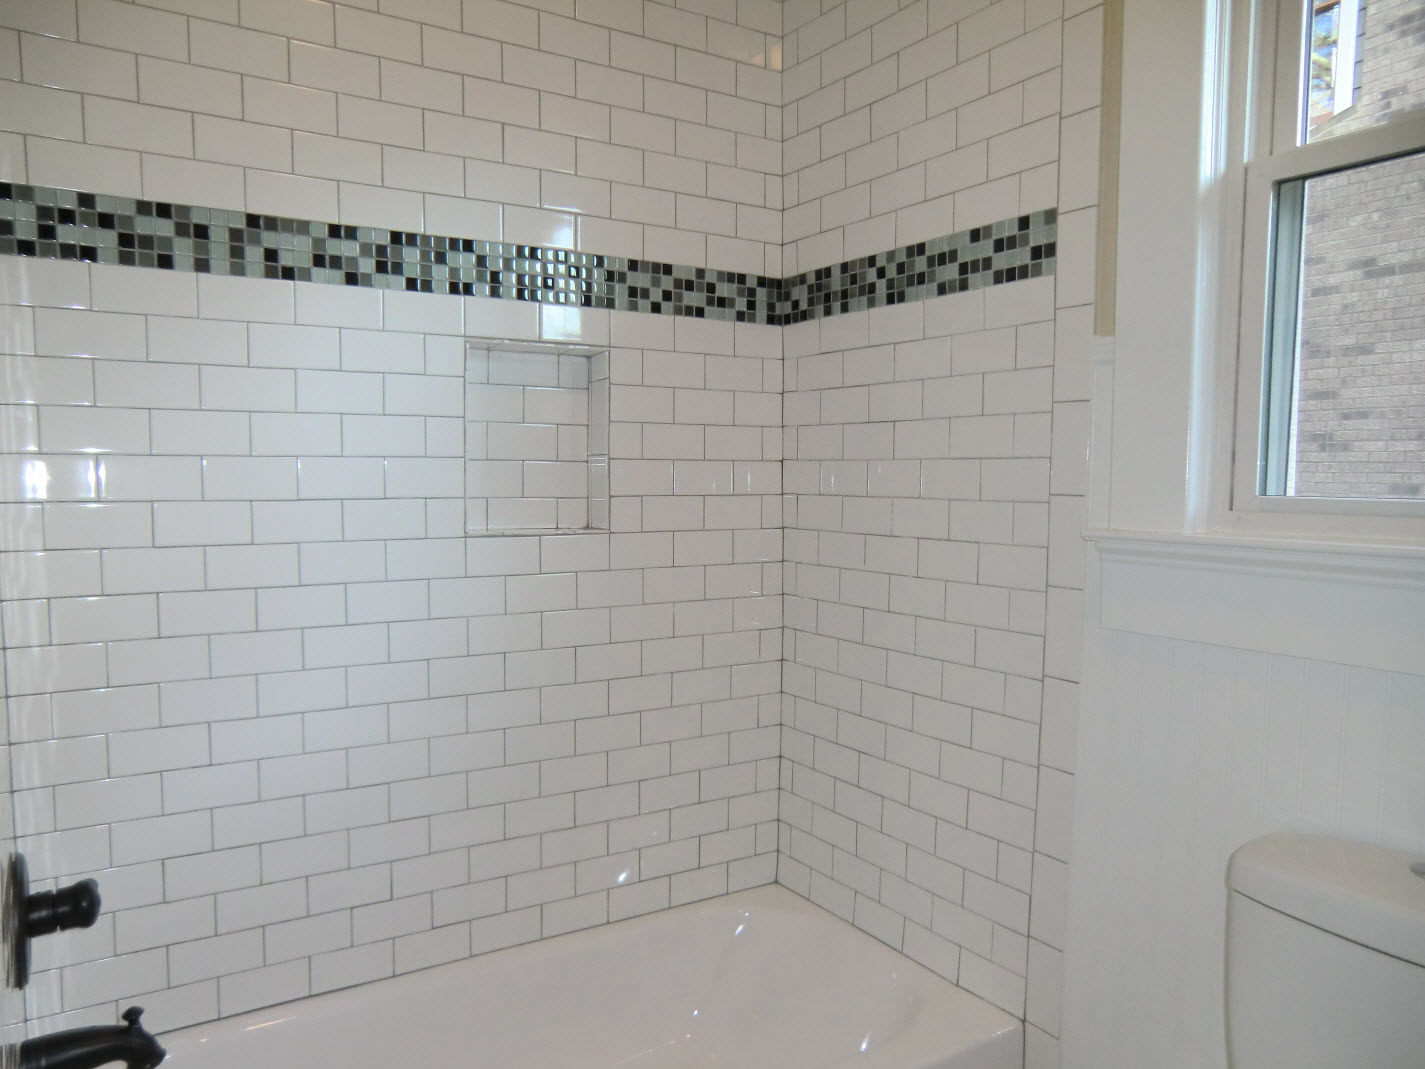 28 pictures for bathrooms with subway tiles 2020